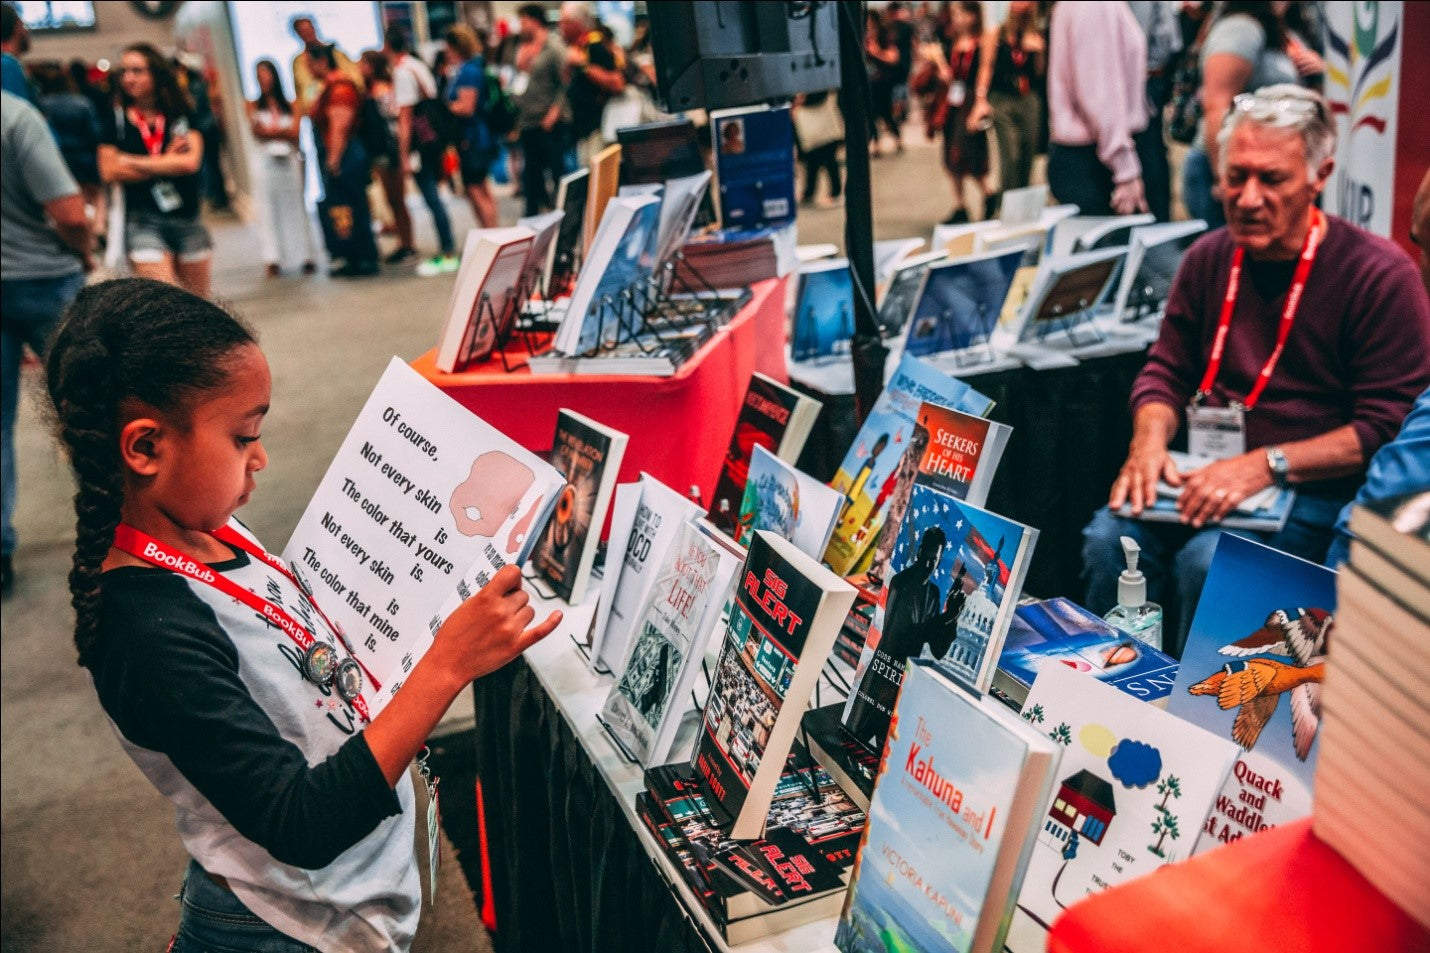 An image of a girl reading a book at a book stall